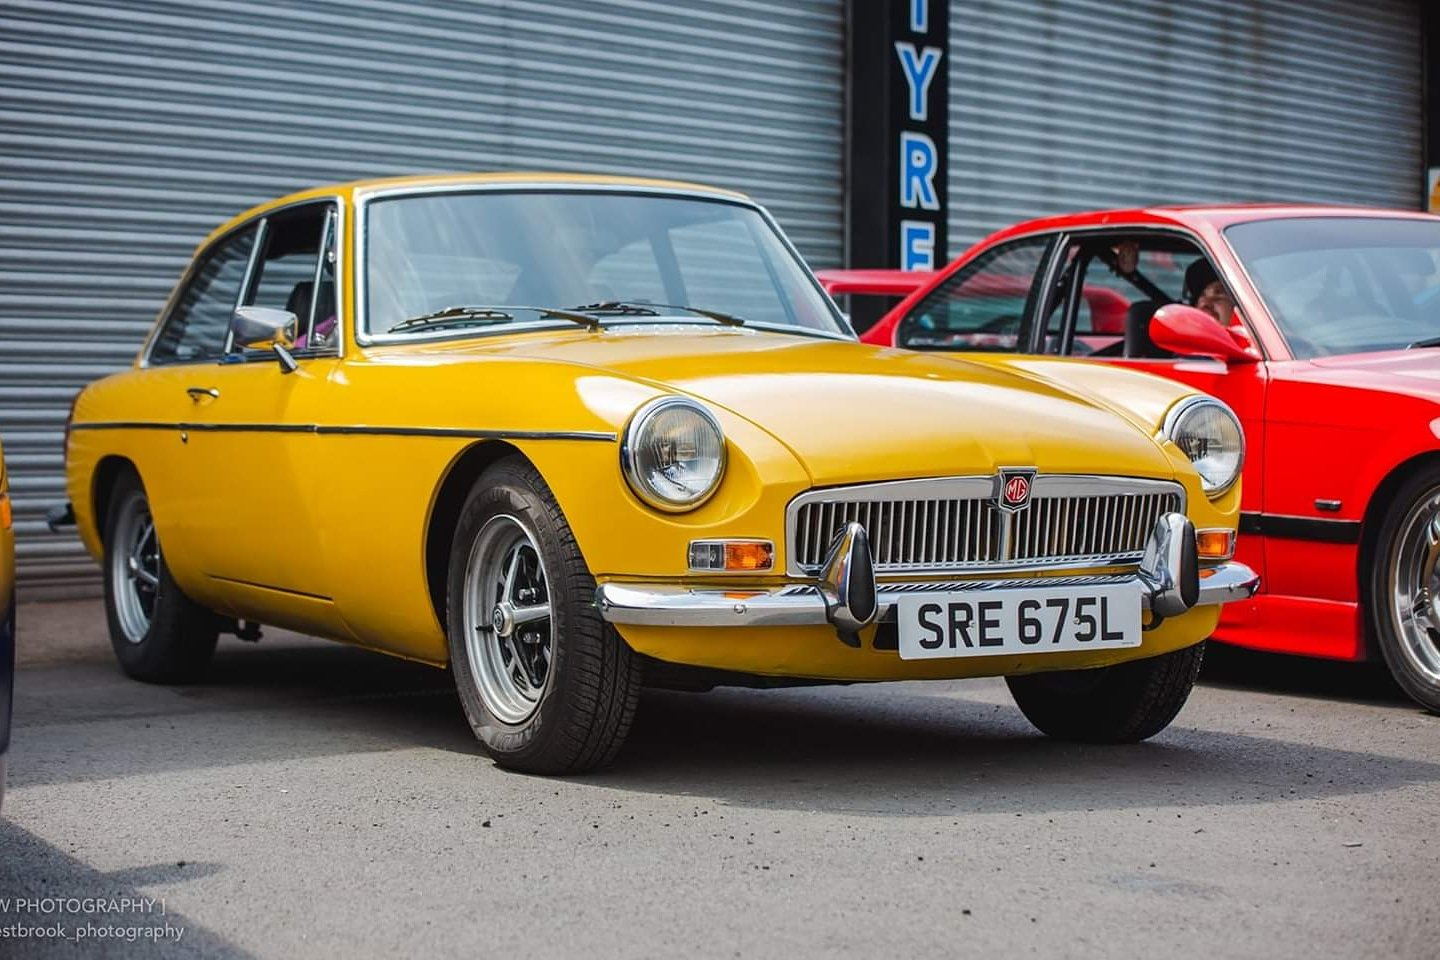 1972 Mgb gt superb condition For Sale (picture 1 of 4)